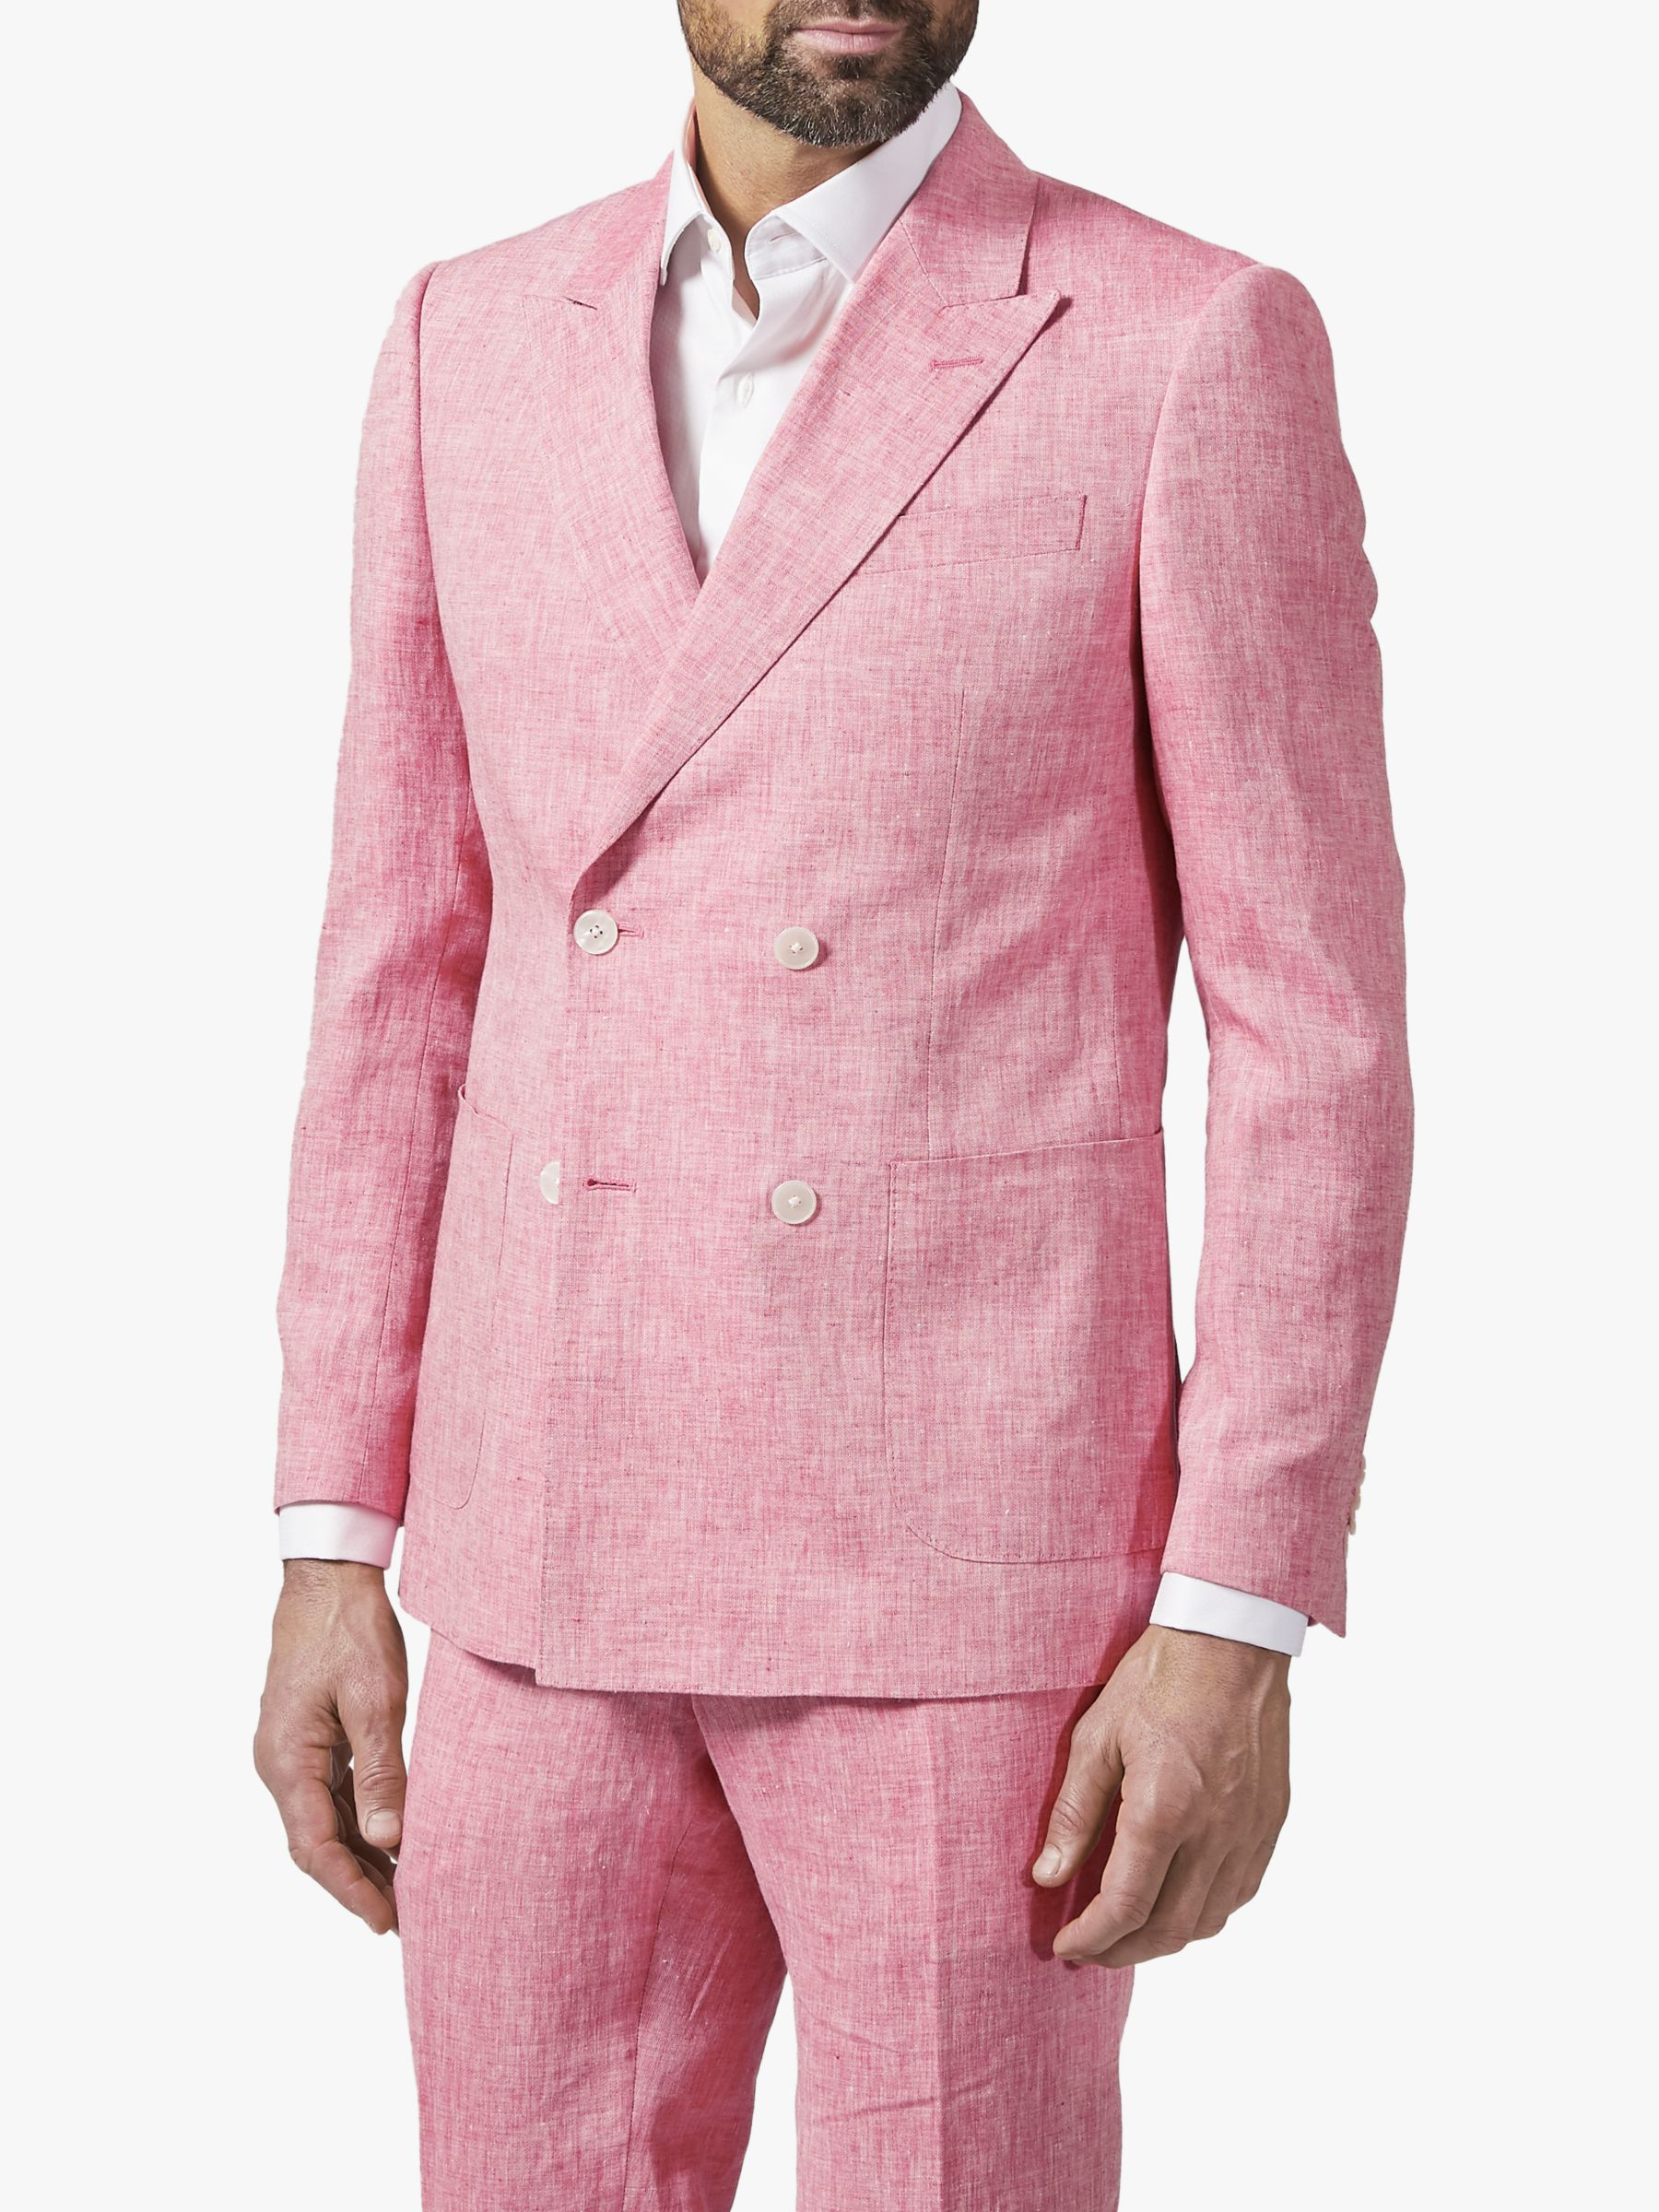 Richard James Mayfair Richard James Mayfair Double Breasted Linen Suit Jacket, Coral